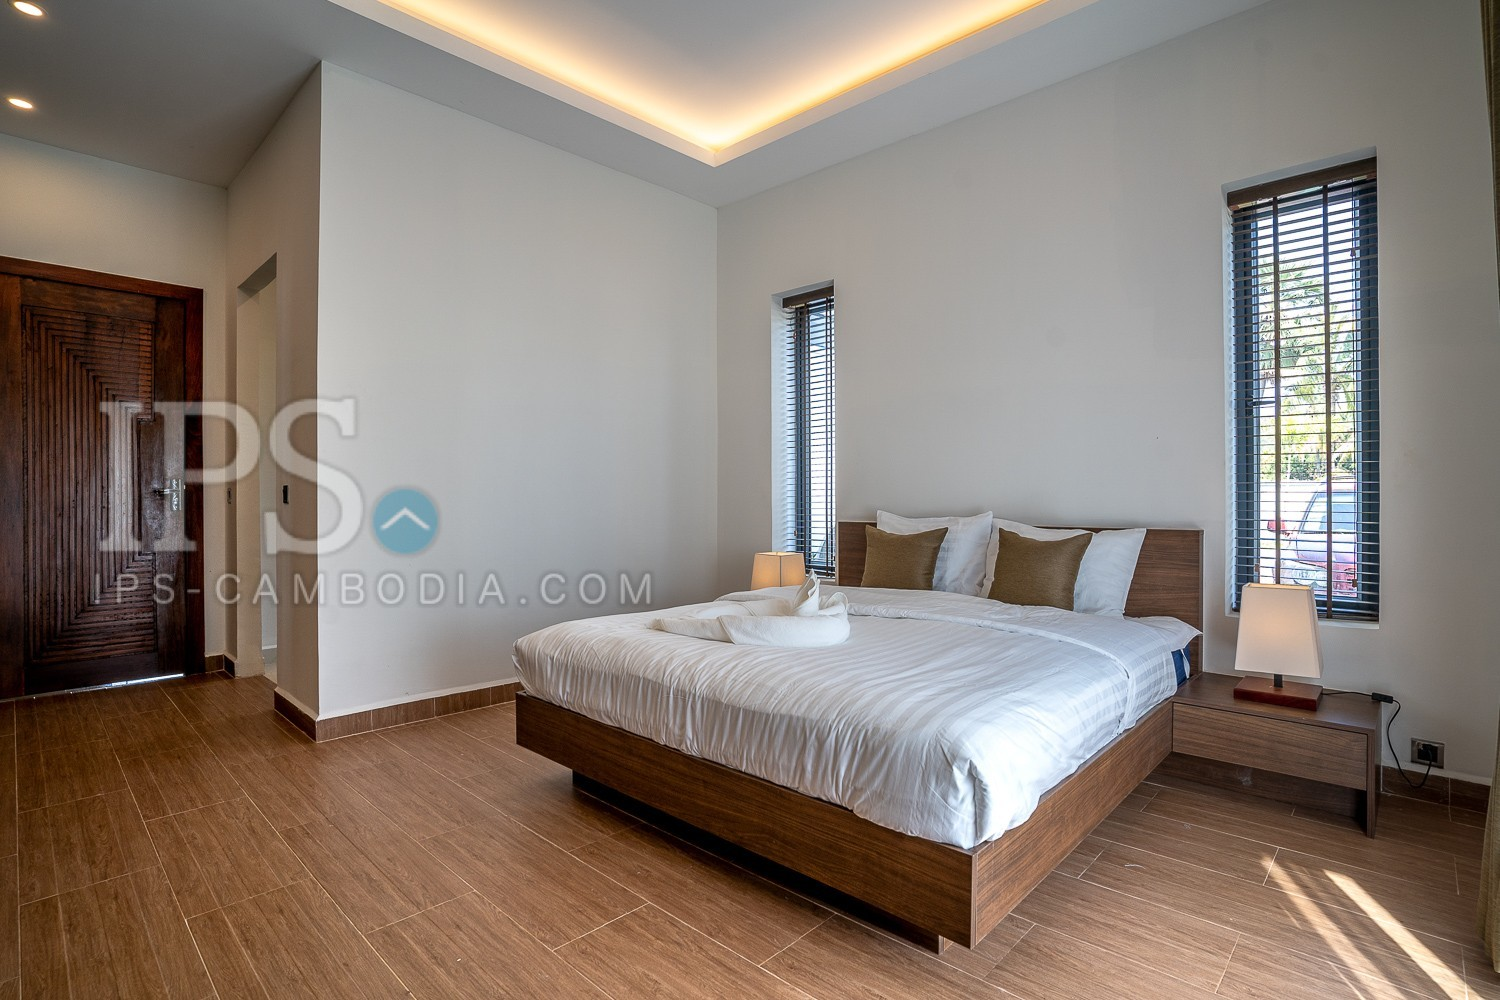 2 Bedroom Apartment For Rent - Chreav, Siem Reap